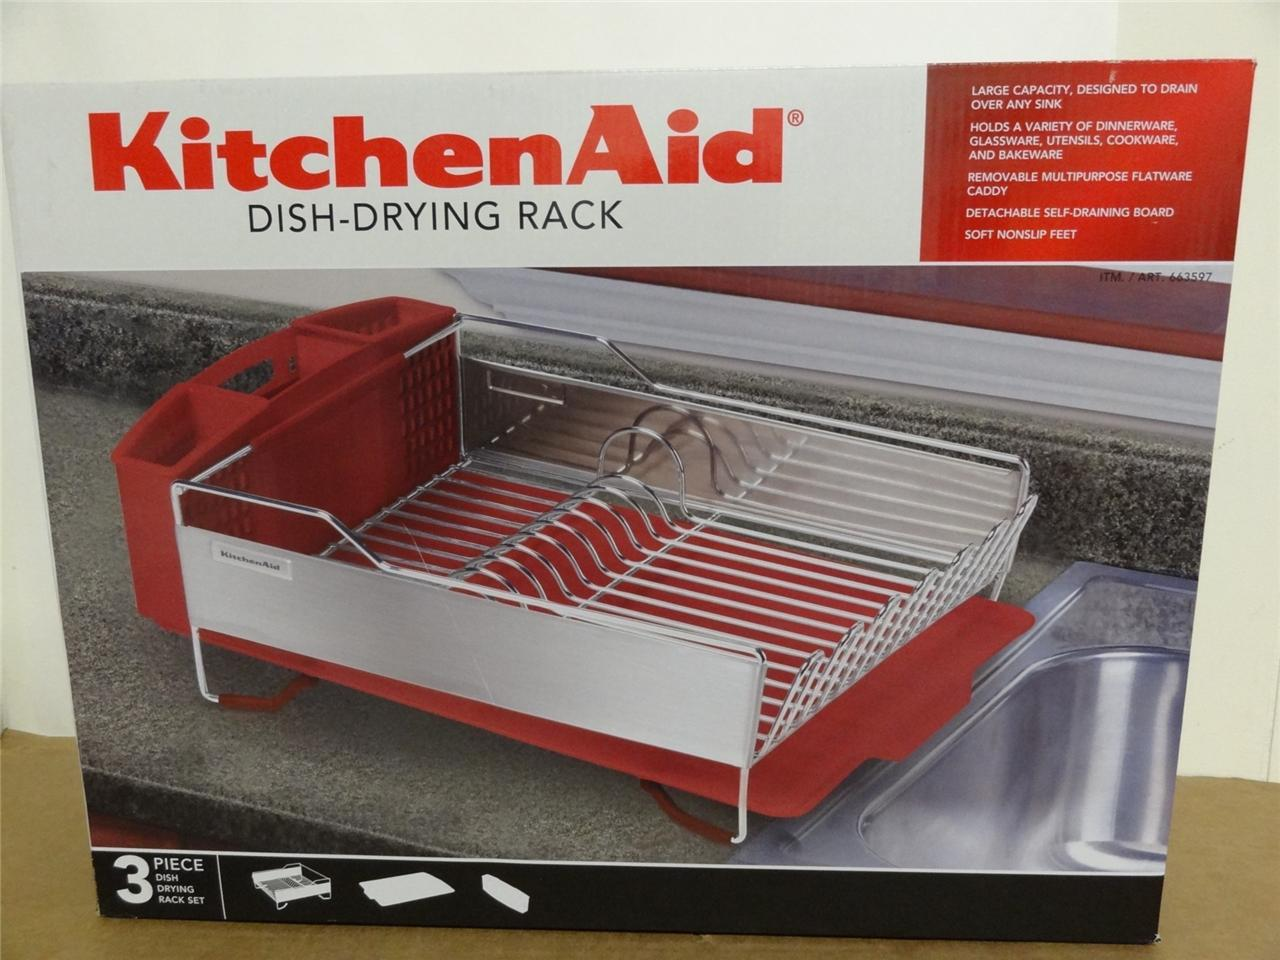 new kitchenaid dish drying rack 3 piece red dish drainer. Black Bedroom Furniture Sets. Home Design Ideas